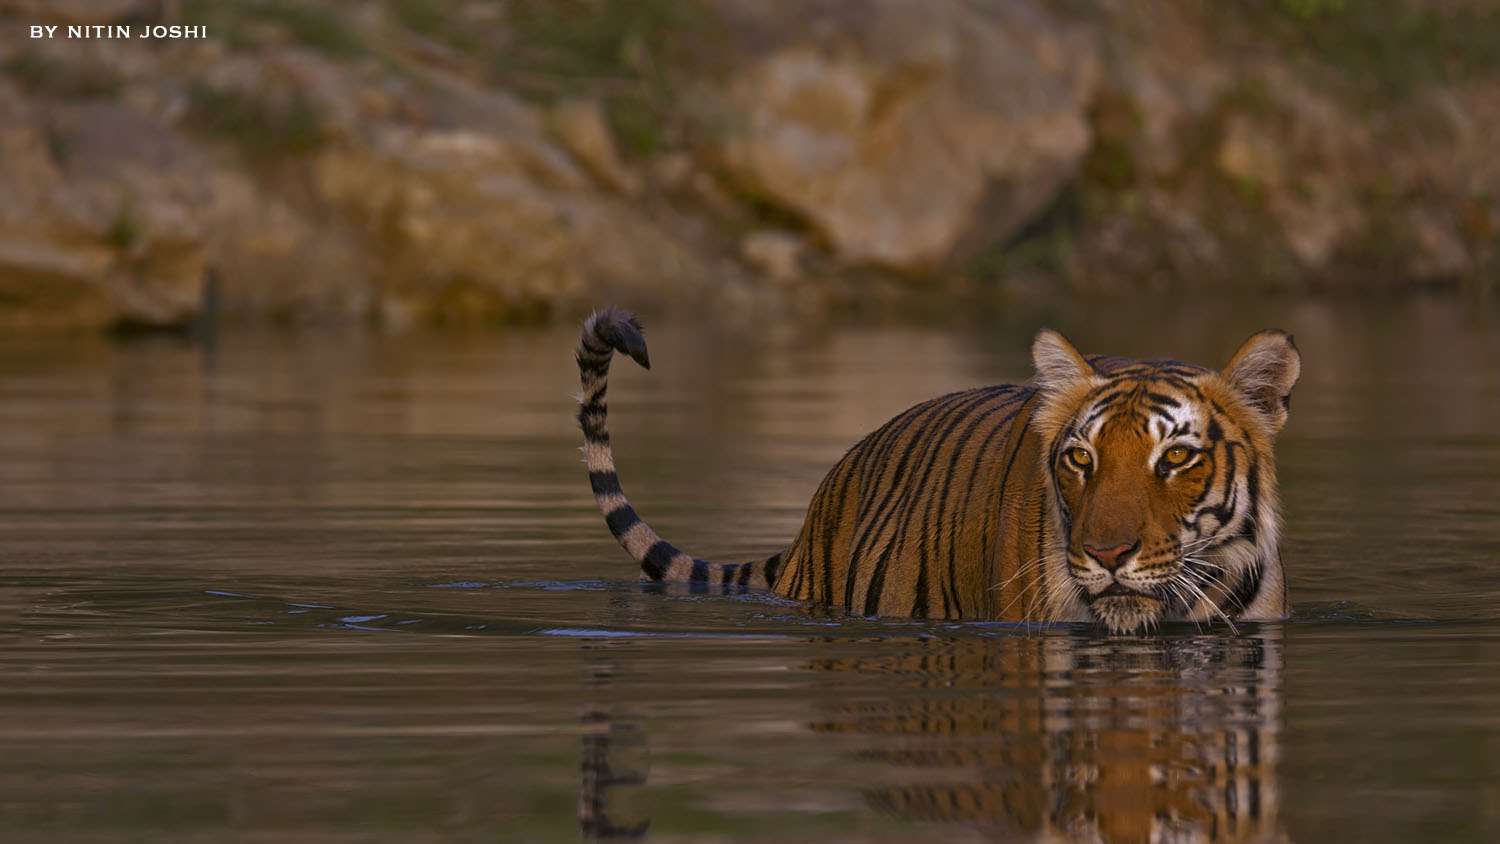 Tiger- An evening with Paarwali